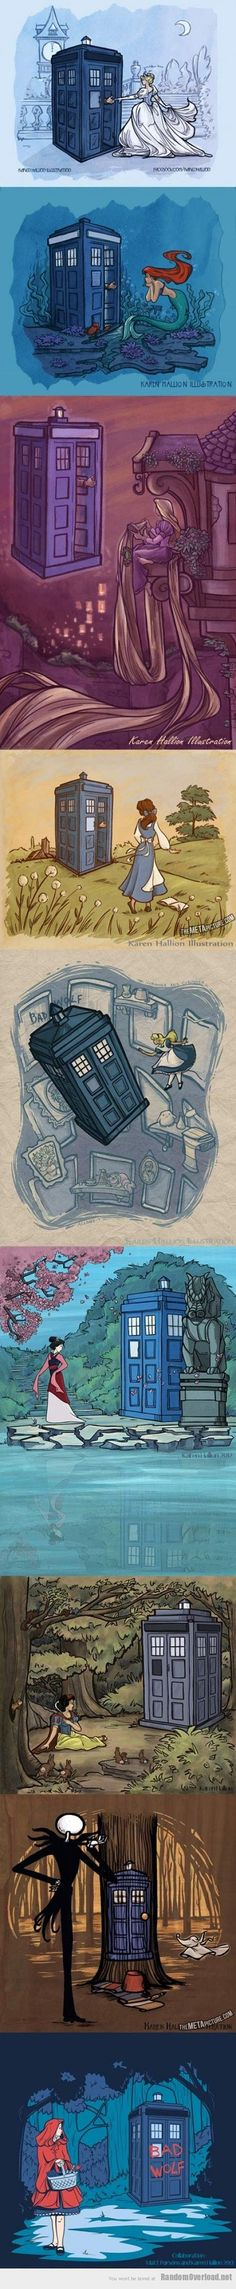 disney princesses and the TARDIS, aww yeeeaaahhh